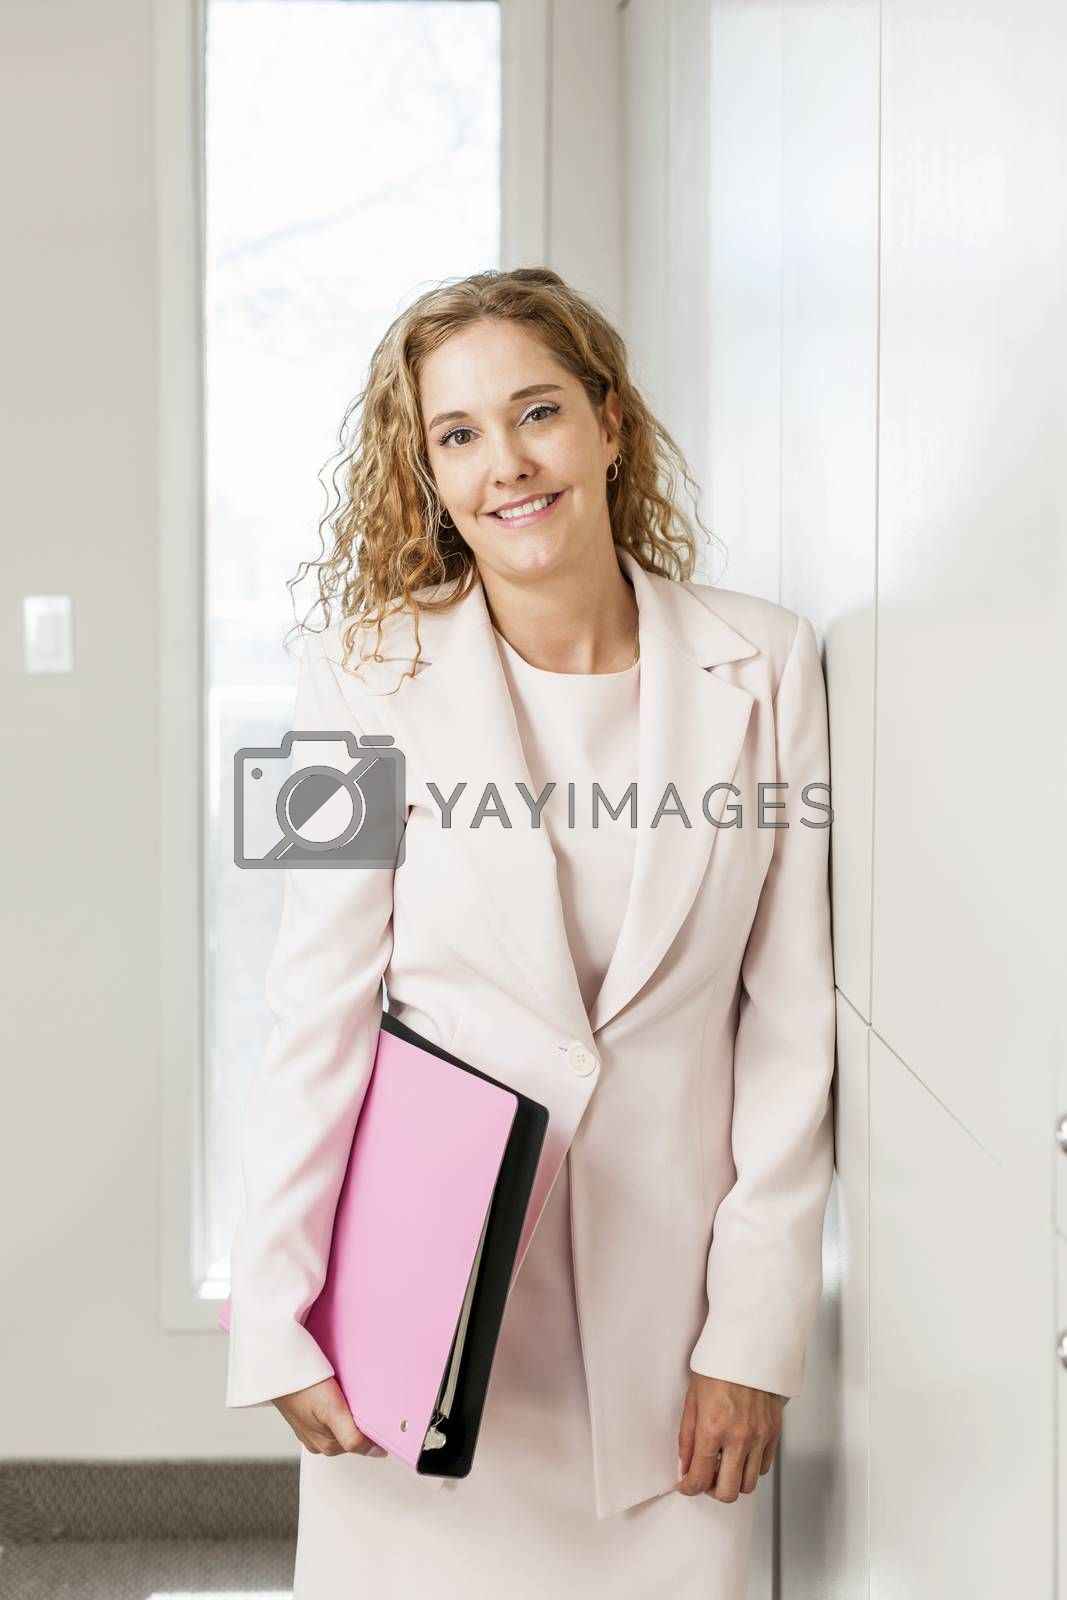 Smiling successful business woman standing in office hallway holding binder